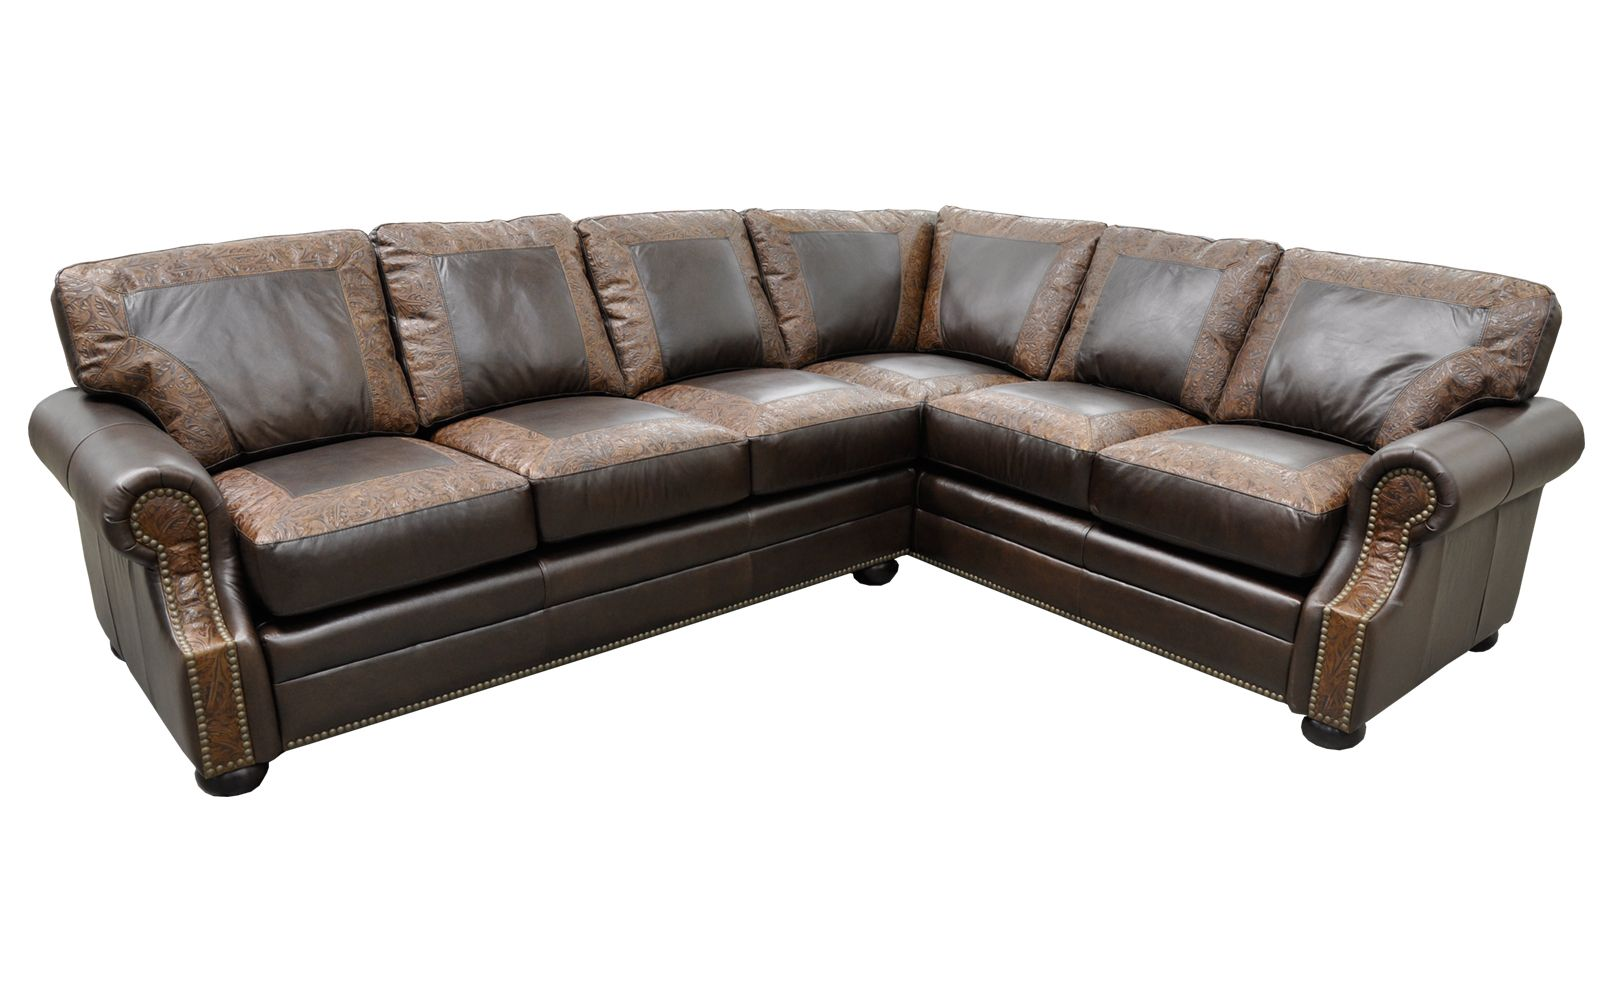 Made Outback Tan Sofa Residence Leather Chaise Sofa Leather Corner Sofa Chaise Sofa